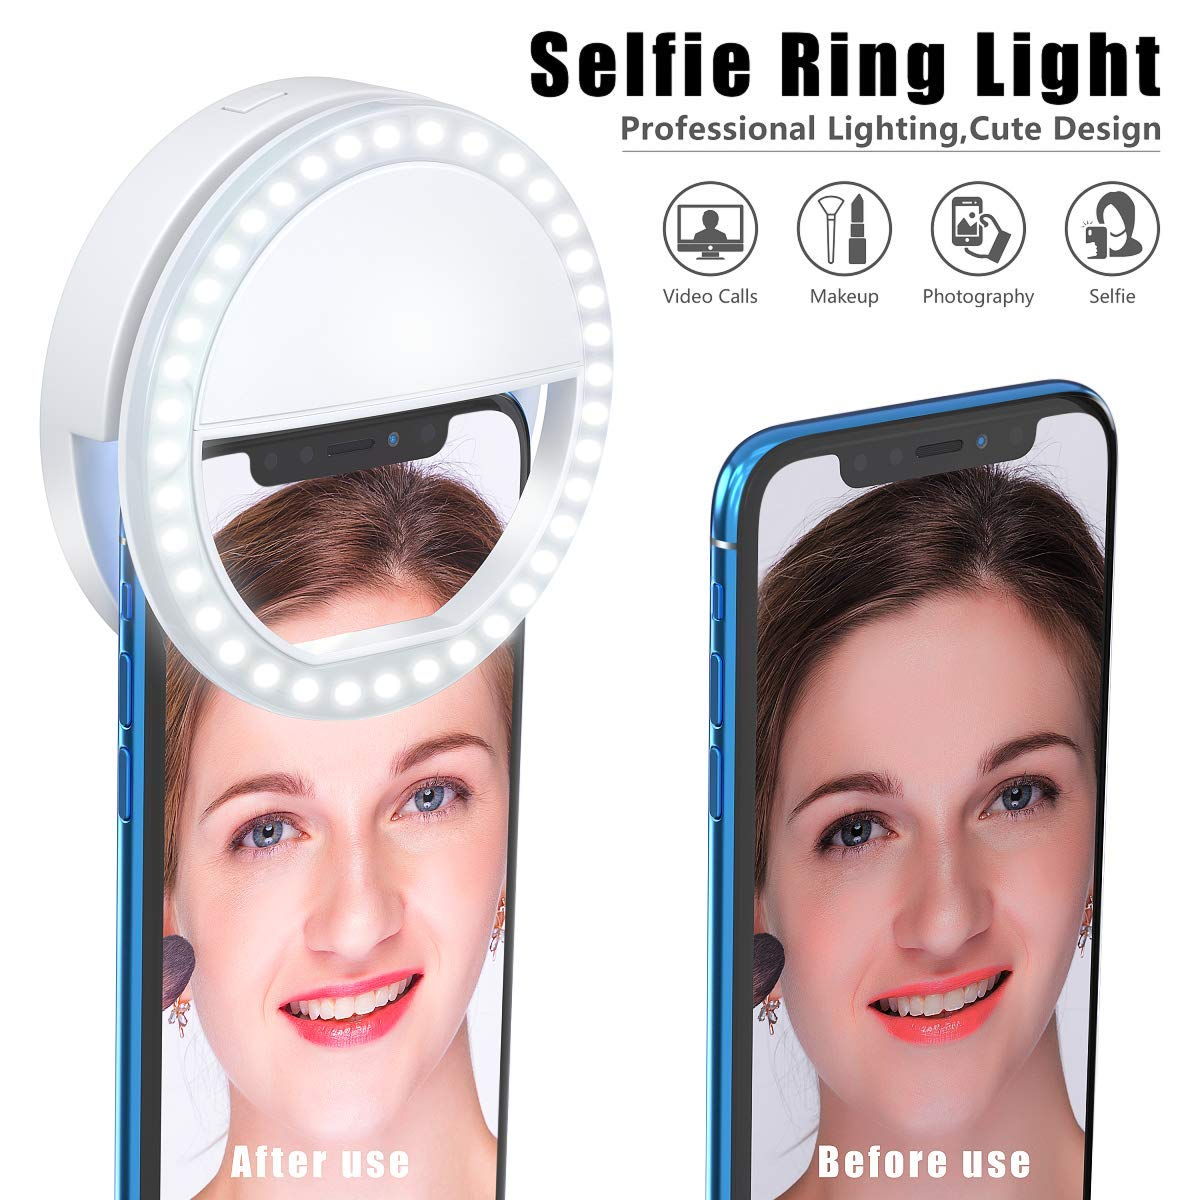 Meifigno Selfie Phone Camera Ring Light with [Rechargeable] 36 LED Light, 3-Level Adjustable Brightness On-Video Lights Clips On Night Makeup Light Compatible for iPhone Samsung Photography (White) by Meifigno (Image #4)